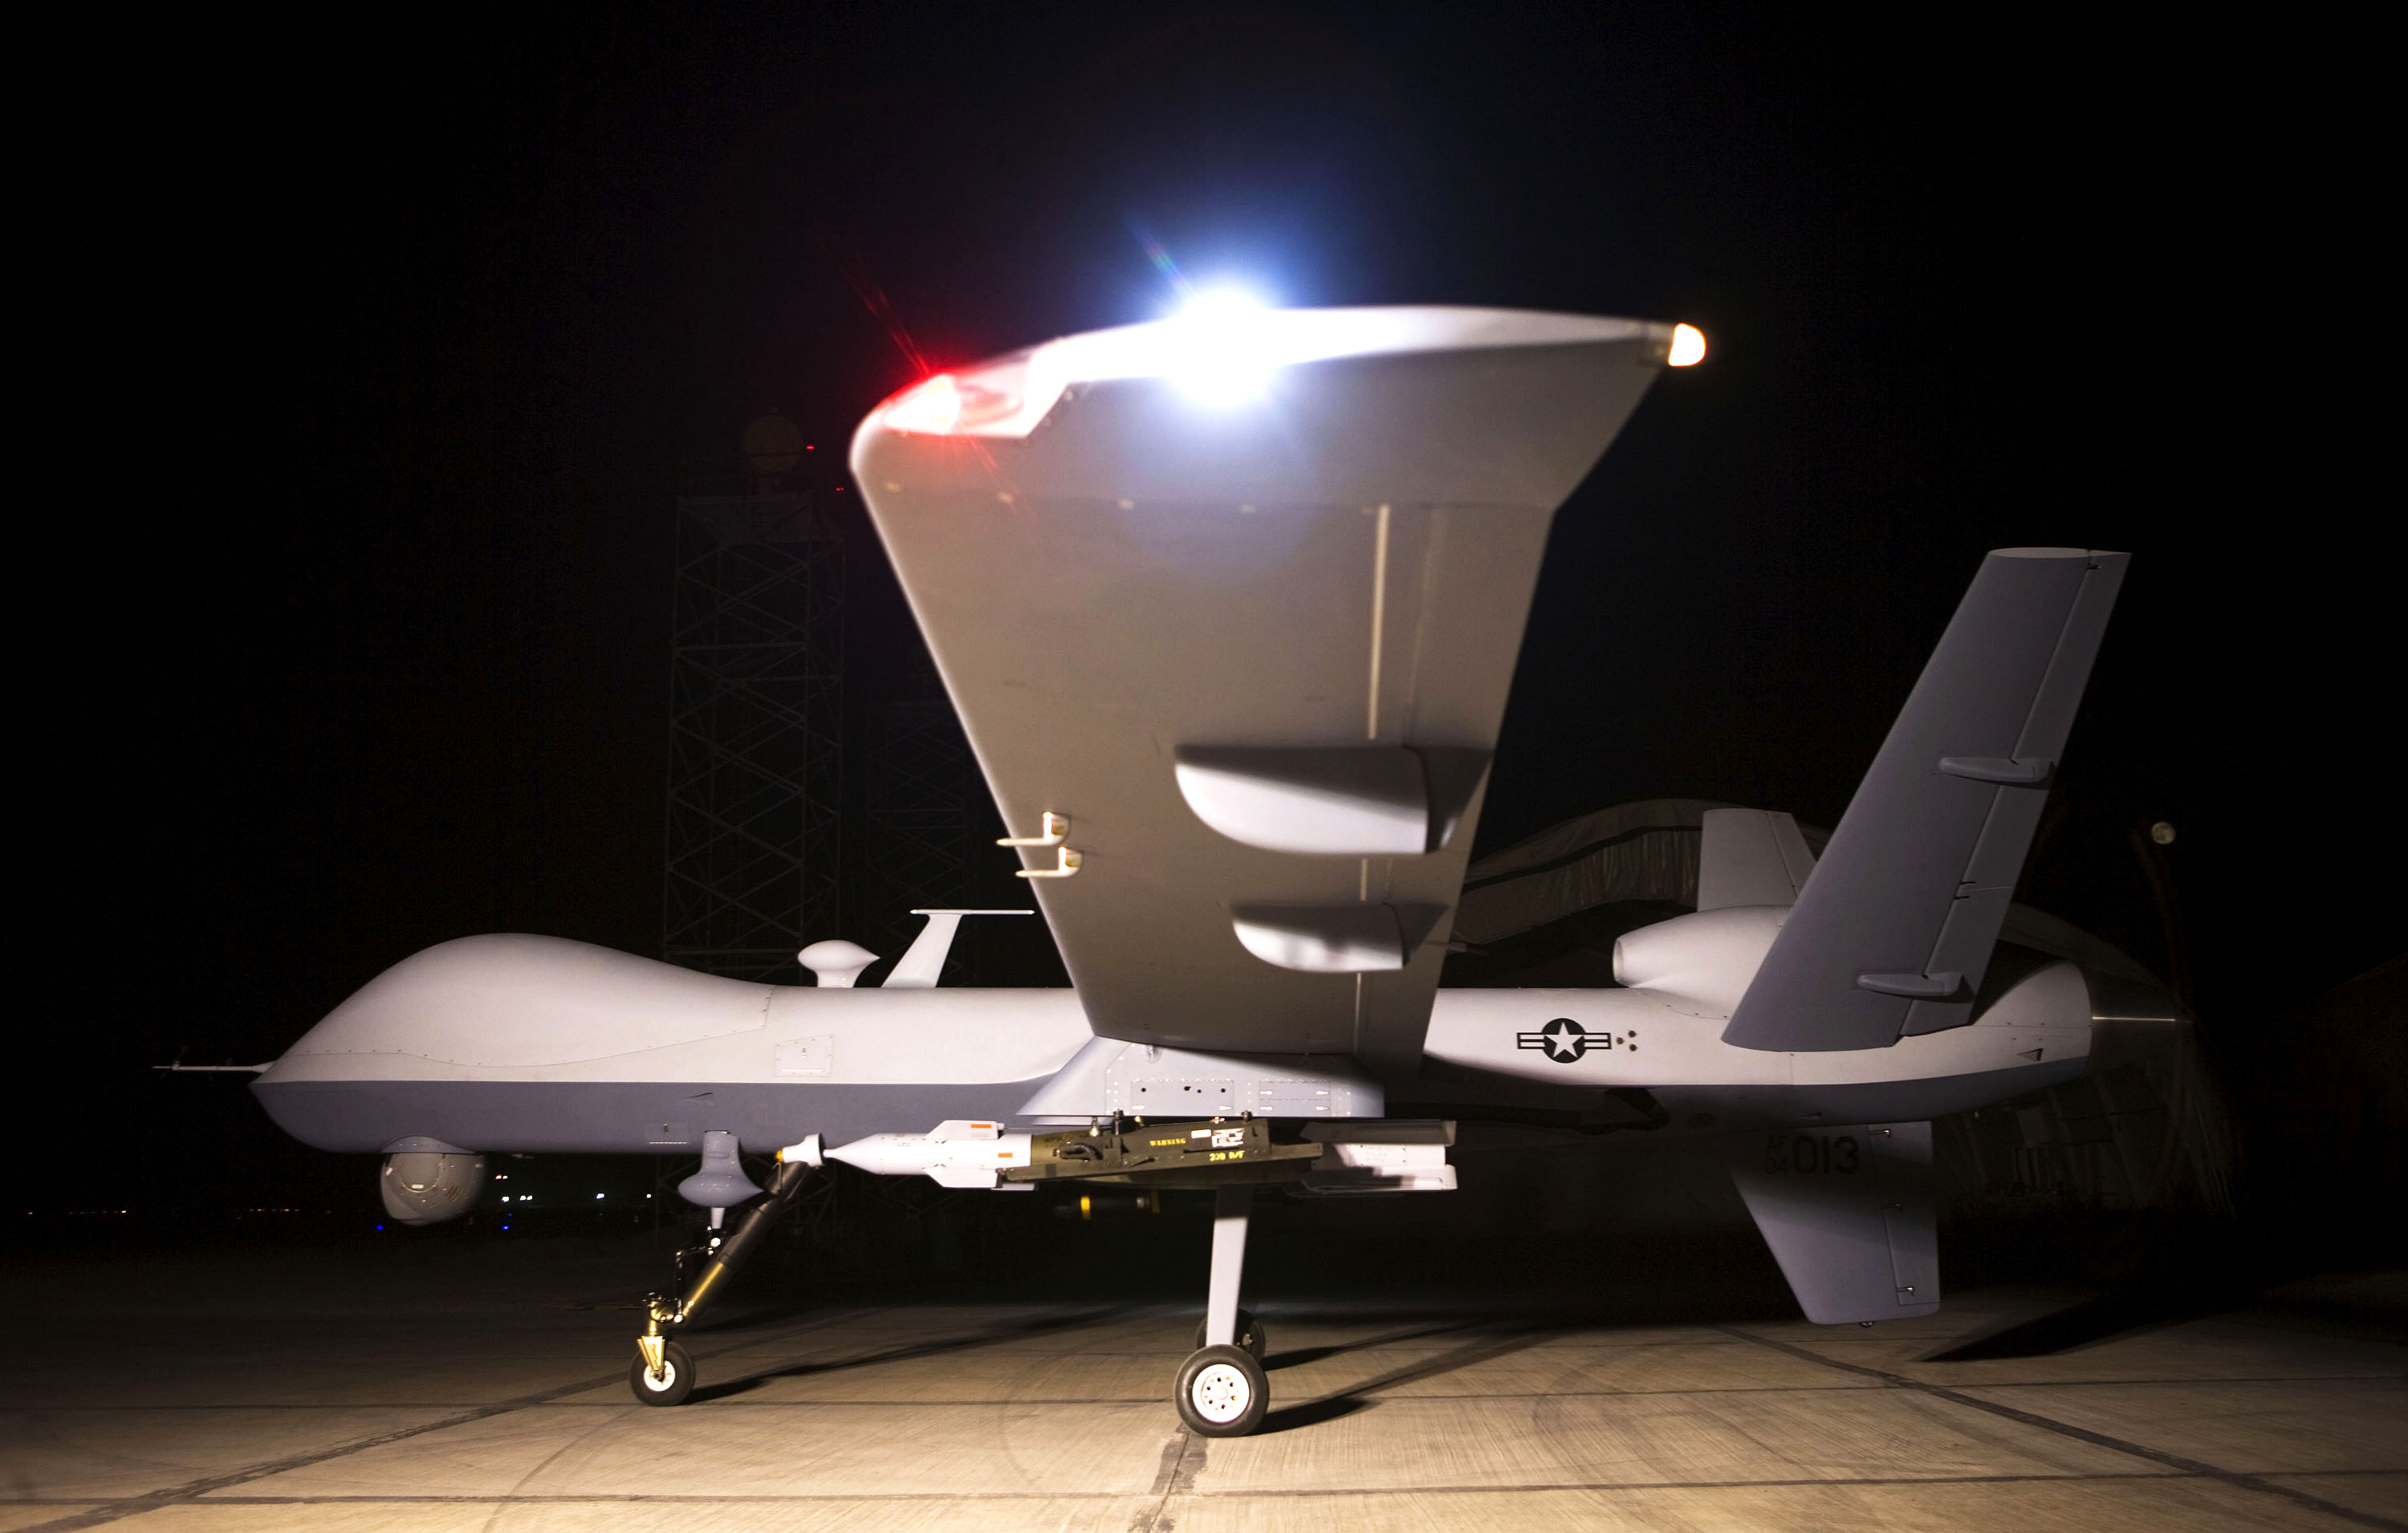 An MQ-9 Reaper sits on a ramp in Afghanistan Oct. 1. The Reaper is launched, recovered and maintained at deployed locations, while being remotely operated by pilots and sensor operators at Creech Air Force Base, Nev. (Courtesy photo/US Air Force)